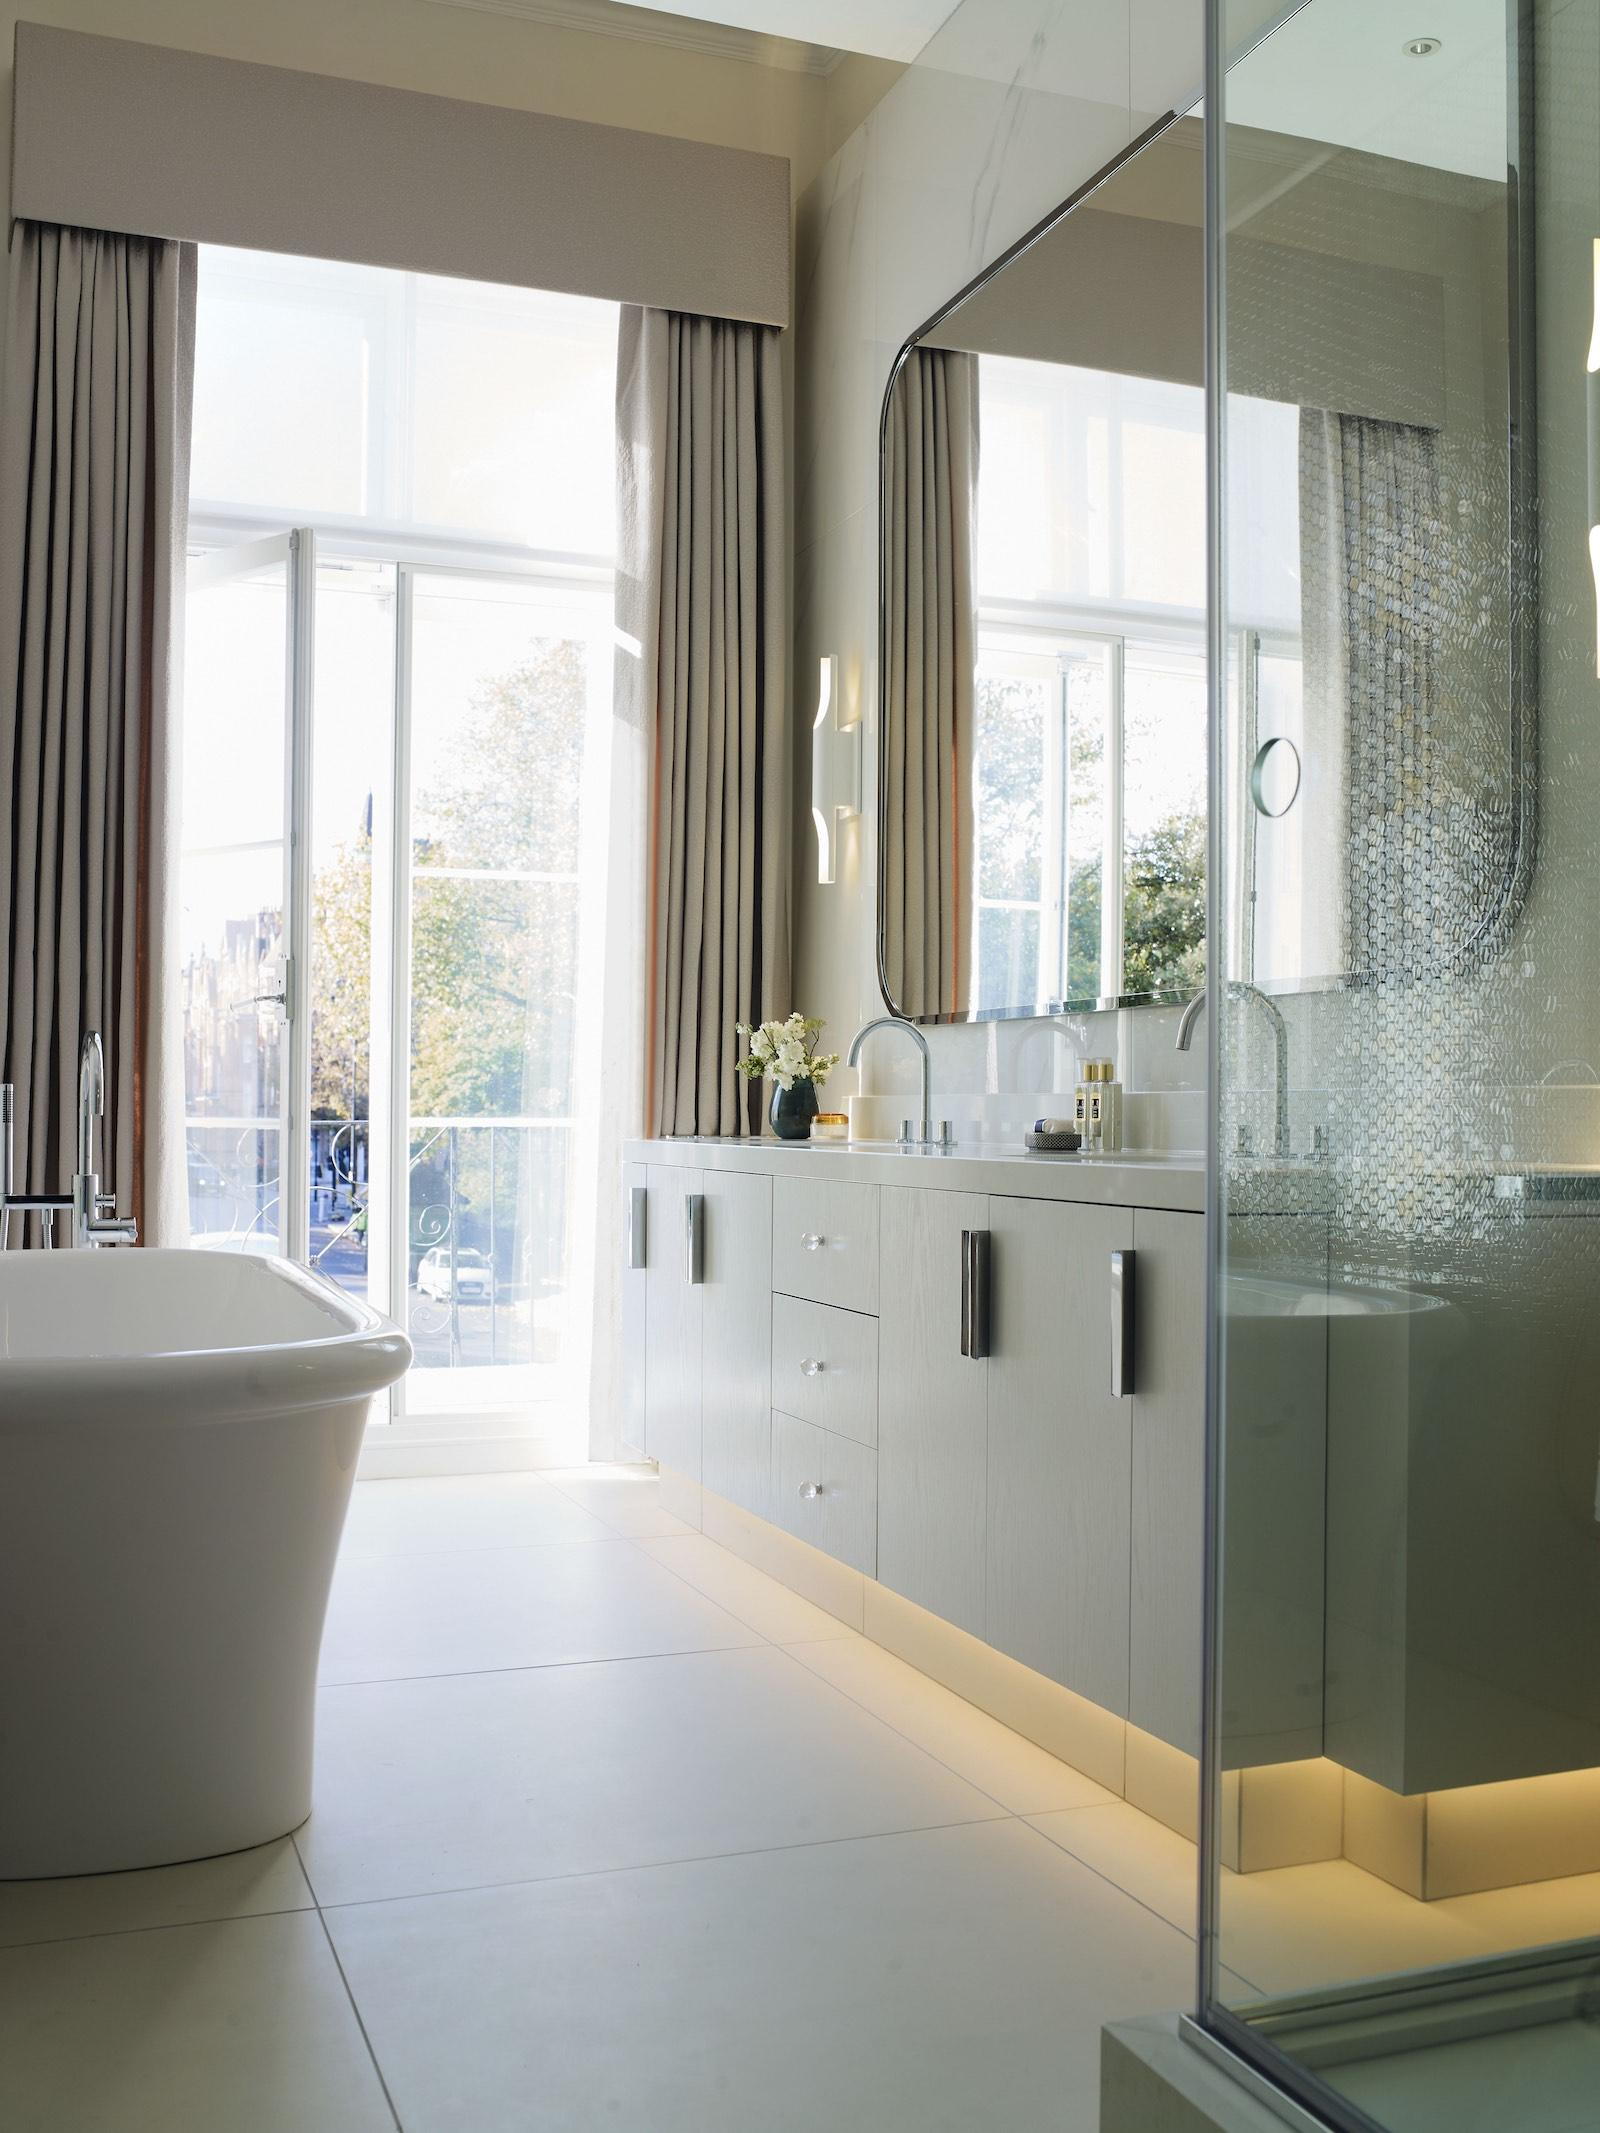 Cadogan Place Bathroom